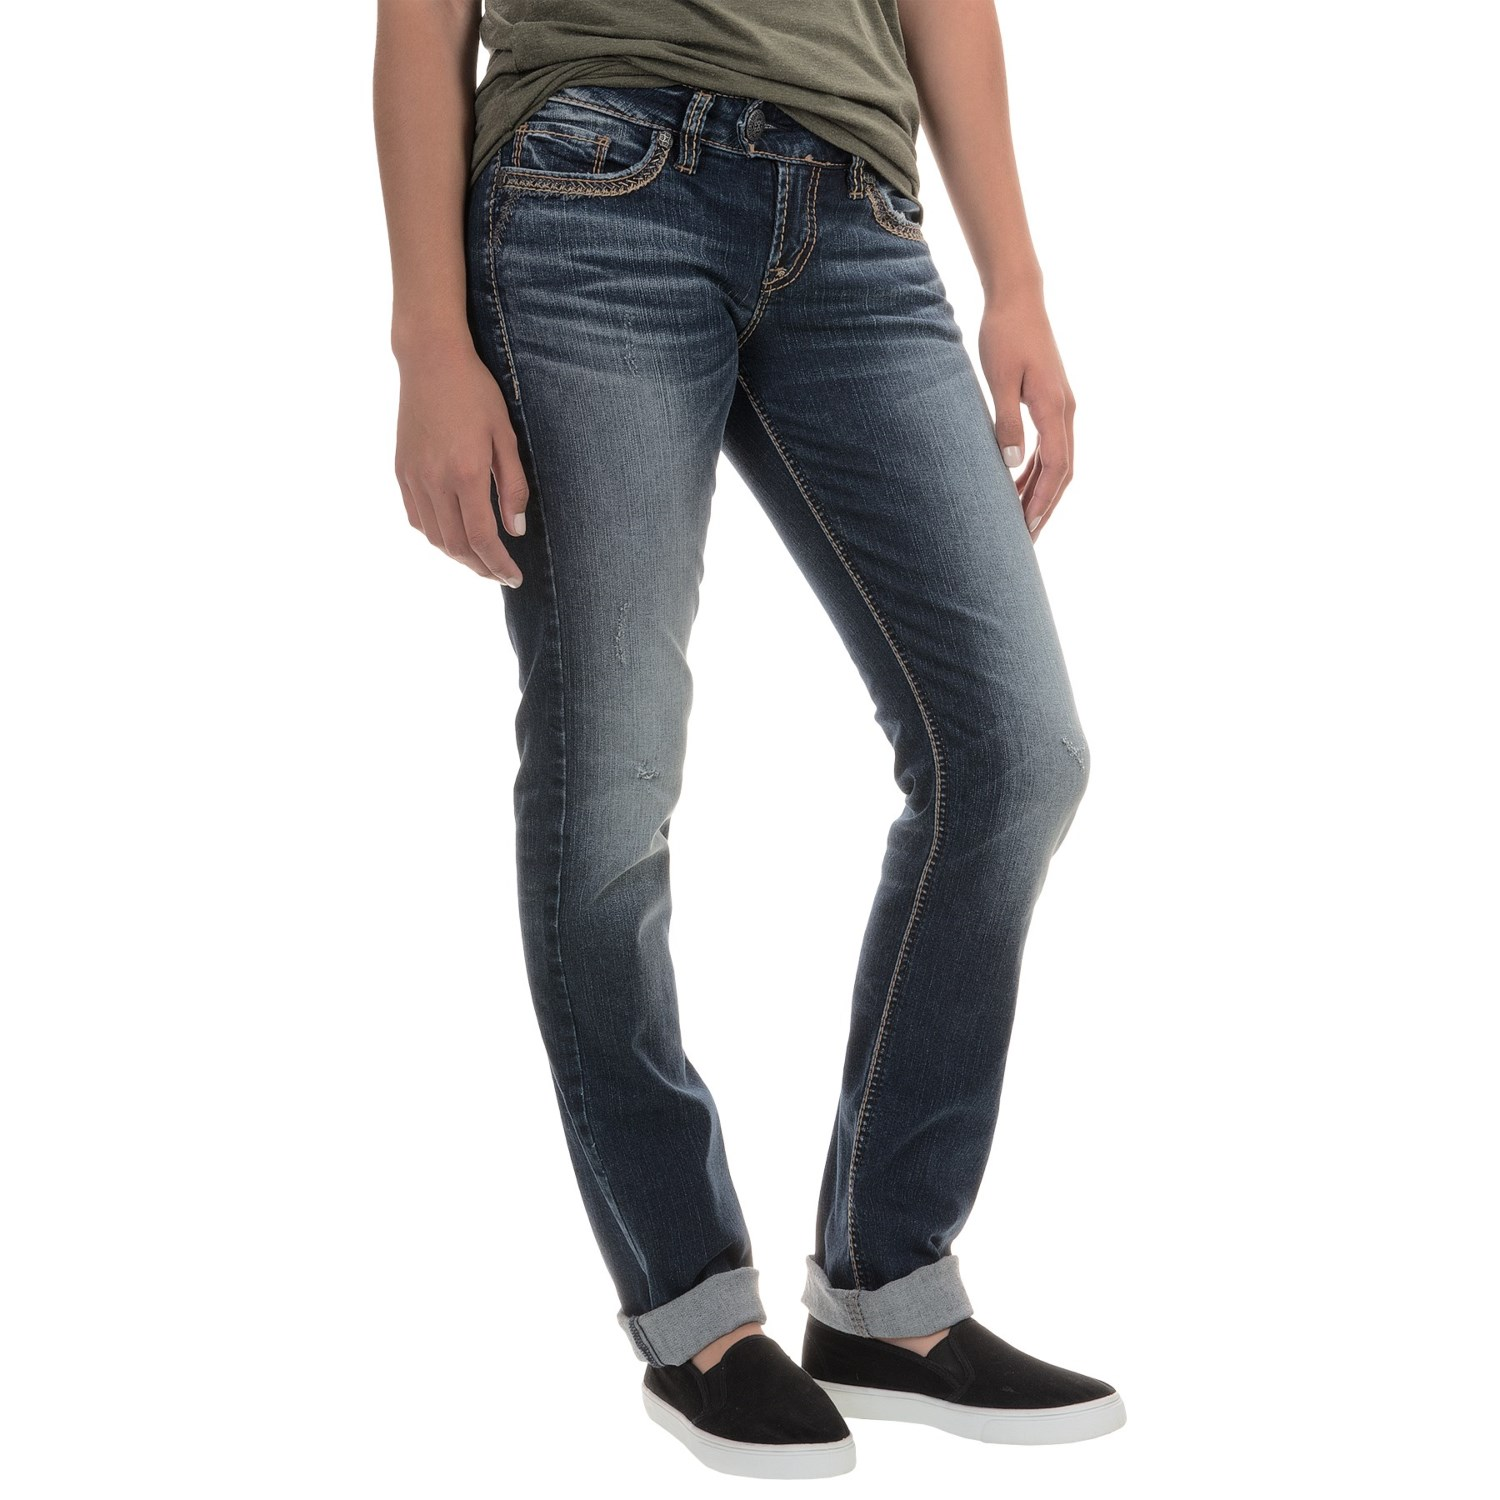 b5541c86 Silver Jeans Tuesday Jeans (For Women) 43 on PopScreen